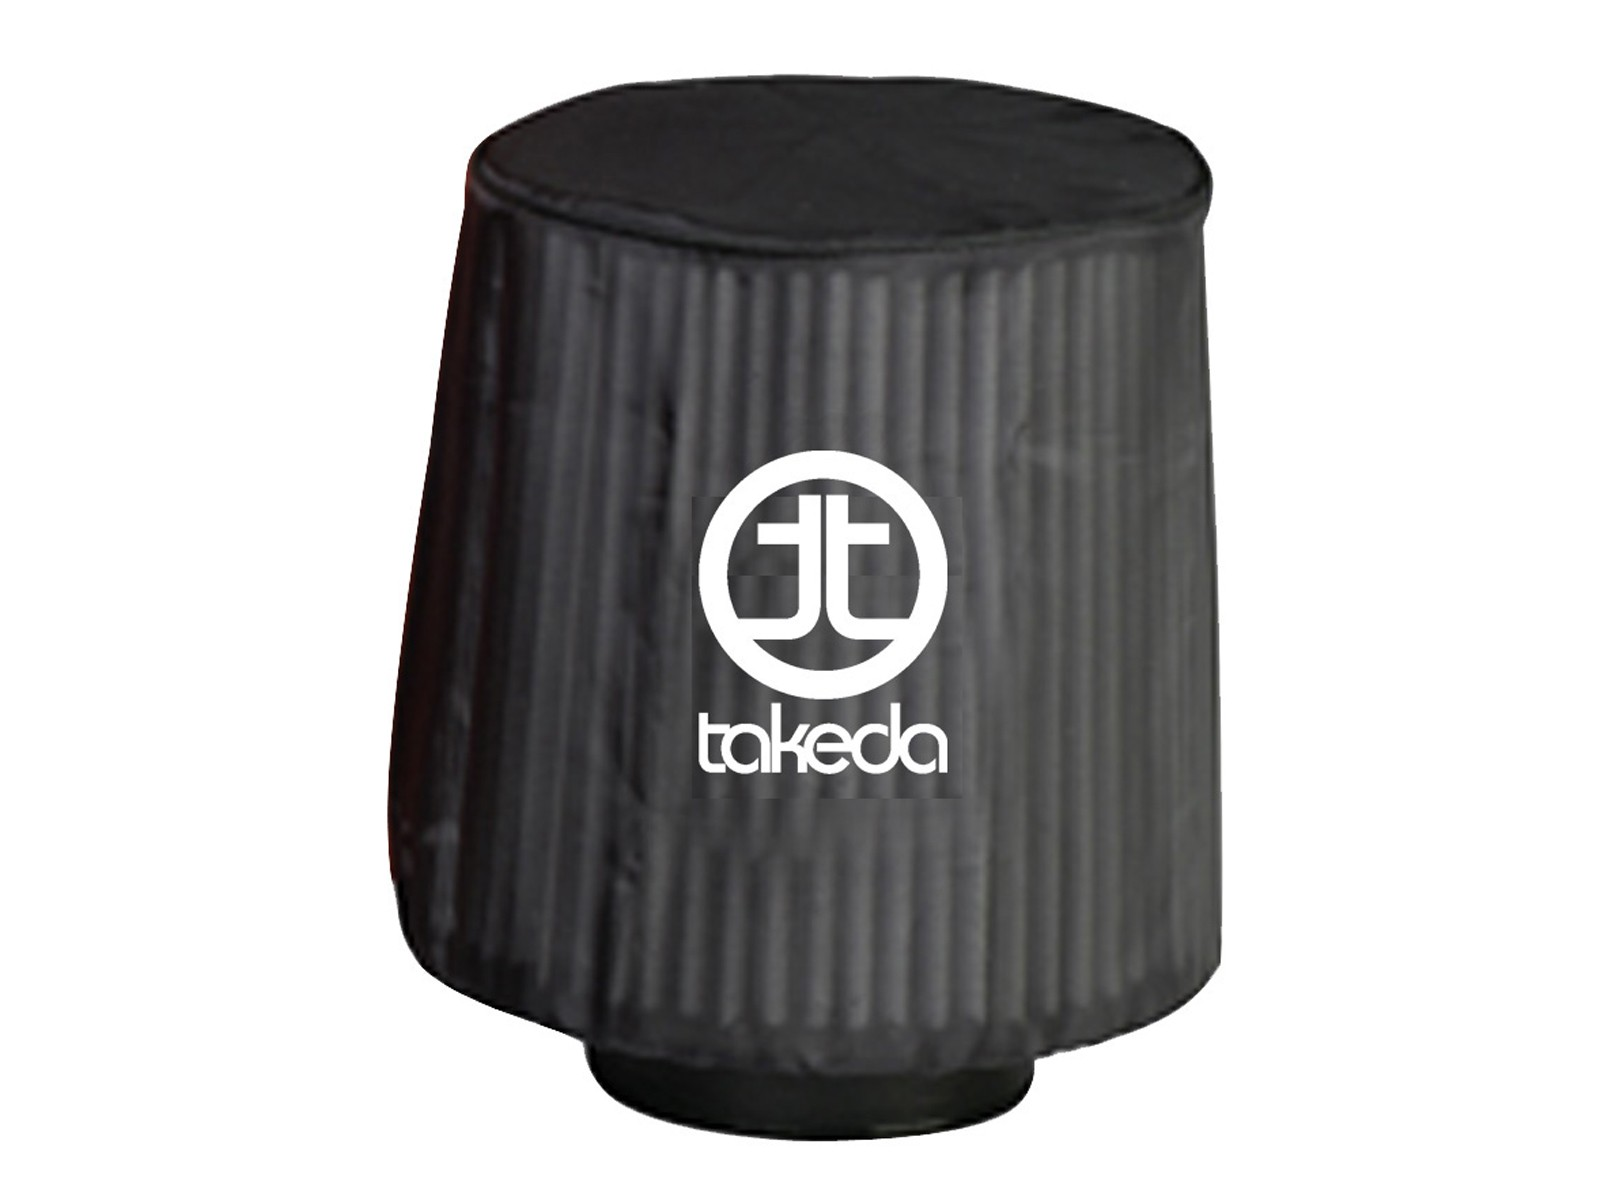 aFe POWER TP-7011B Takeda Pre-Filter